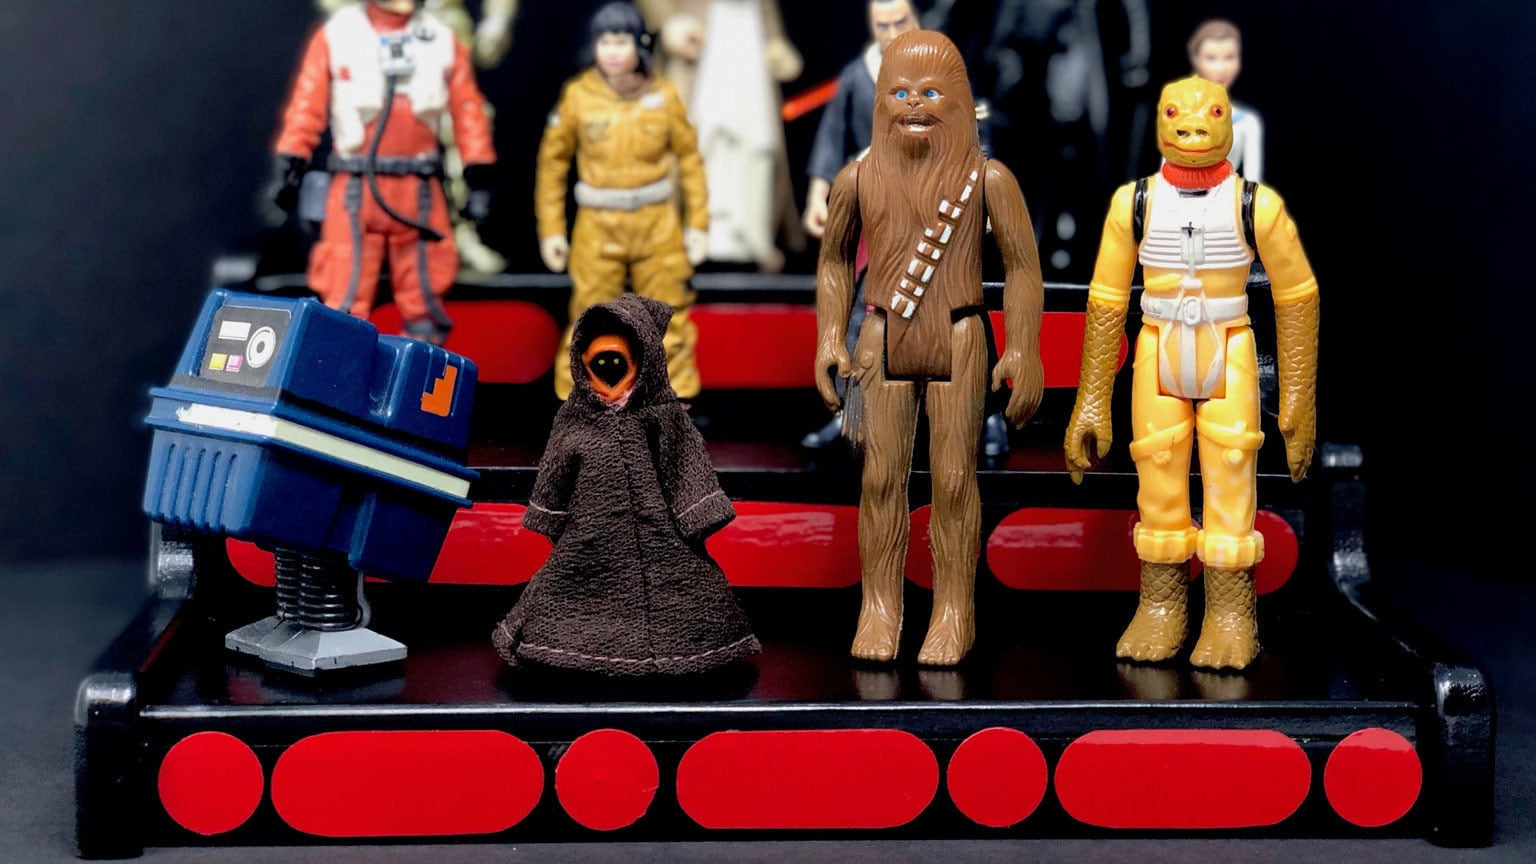 Make Your Star Wars Collection Look Most Impressive with This DIY Display Stand